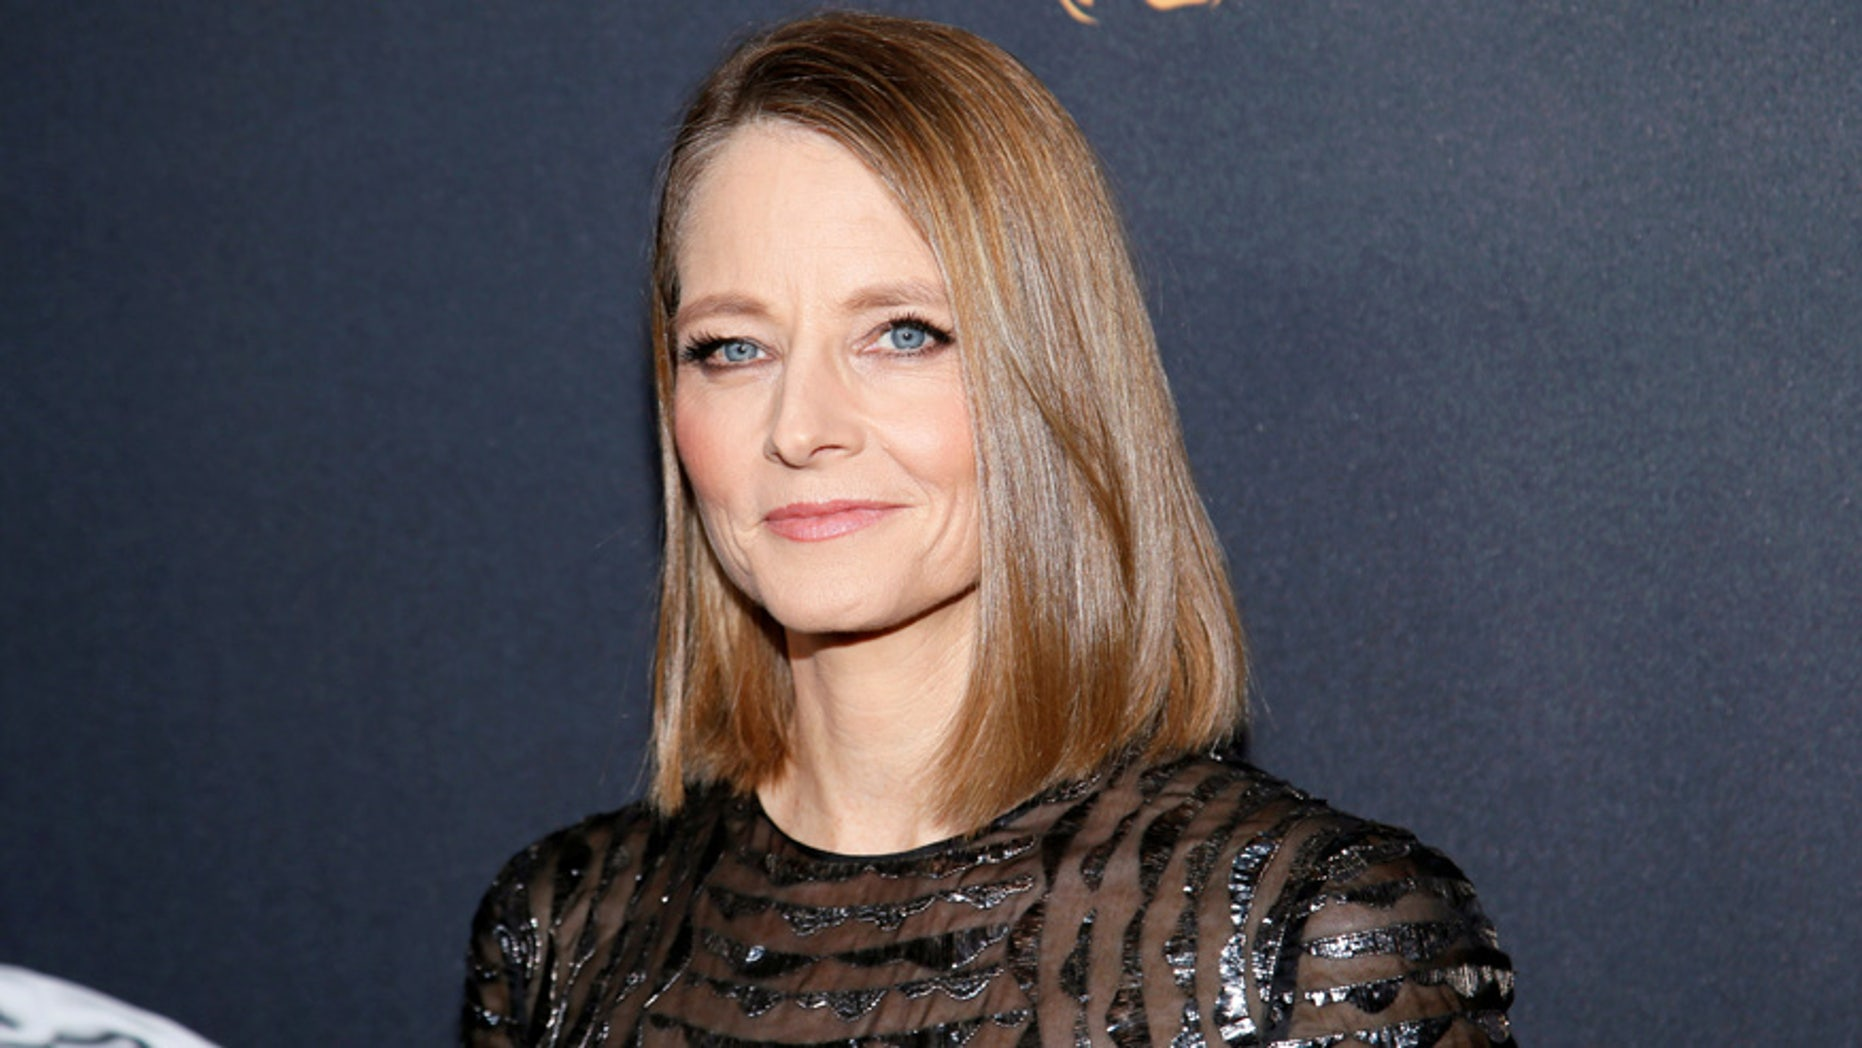 "Jodie Foster told the New York Times in 1981 she was pursuing studies at Yale University in hopes of acheiving a ""normal life."" However as a student, the actress was followed by stalker John Hinckley Jr. before he attempted to assassinate President Ronald Reagan as a means to impress her. She would later graduate from Yale with a B.A. in literature and has credited her studies for helping her to develop characters on-screen."